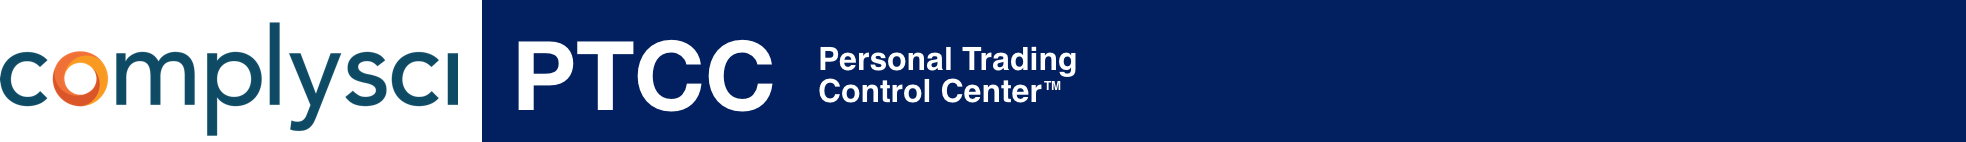 Personal Trading Control Center by Compliance Science